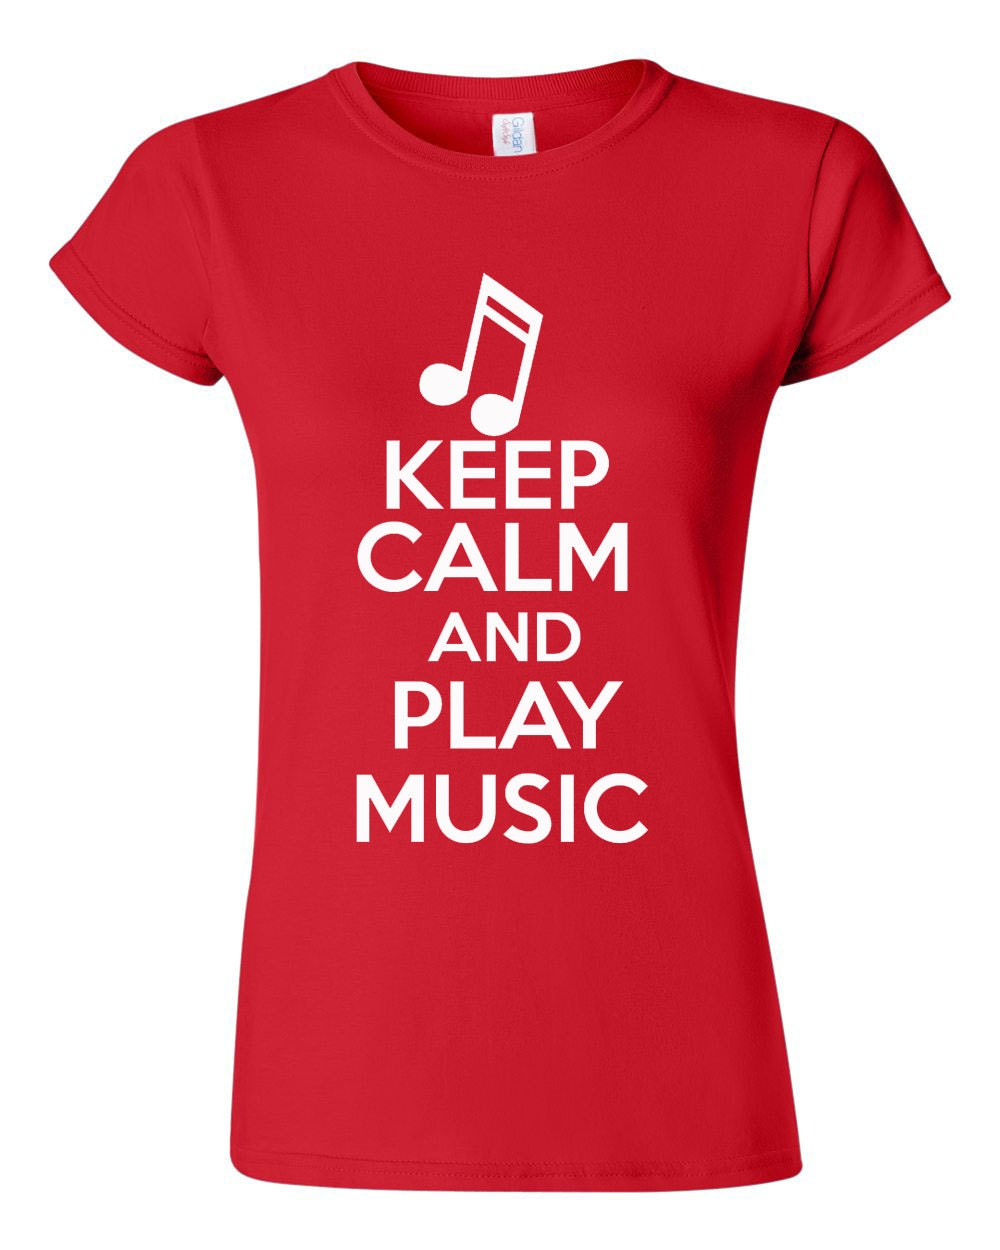 City Shirts Junior Keep Calm And Play Music Musician Novelty Statement T-Shirt Tee at Sears.com